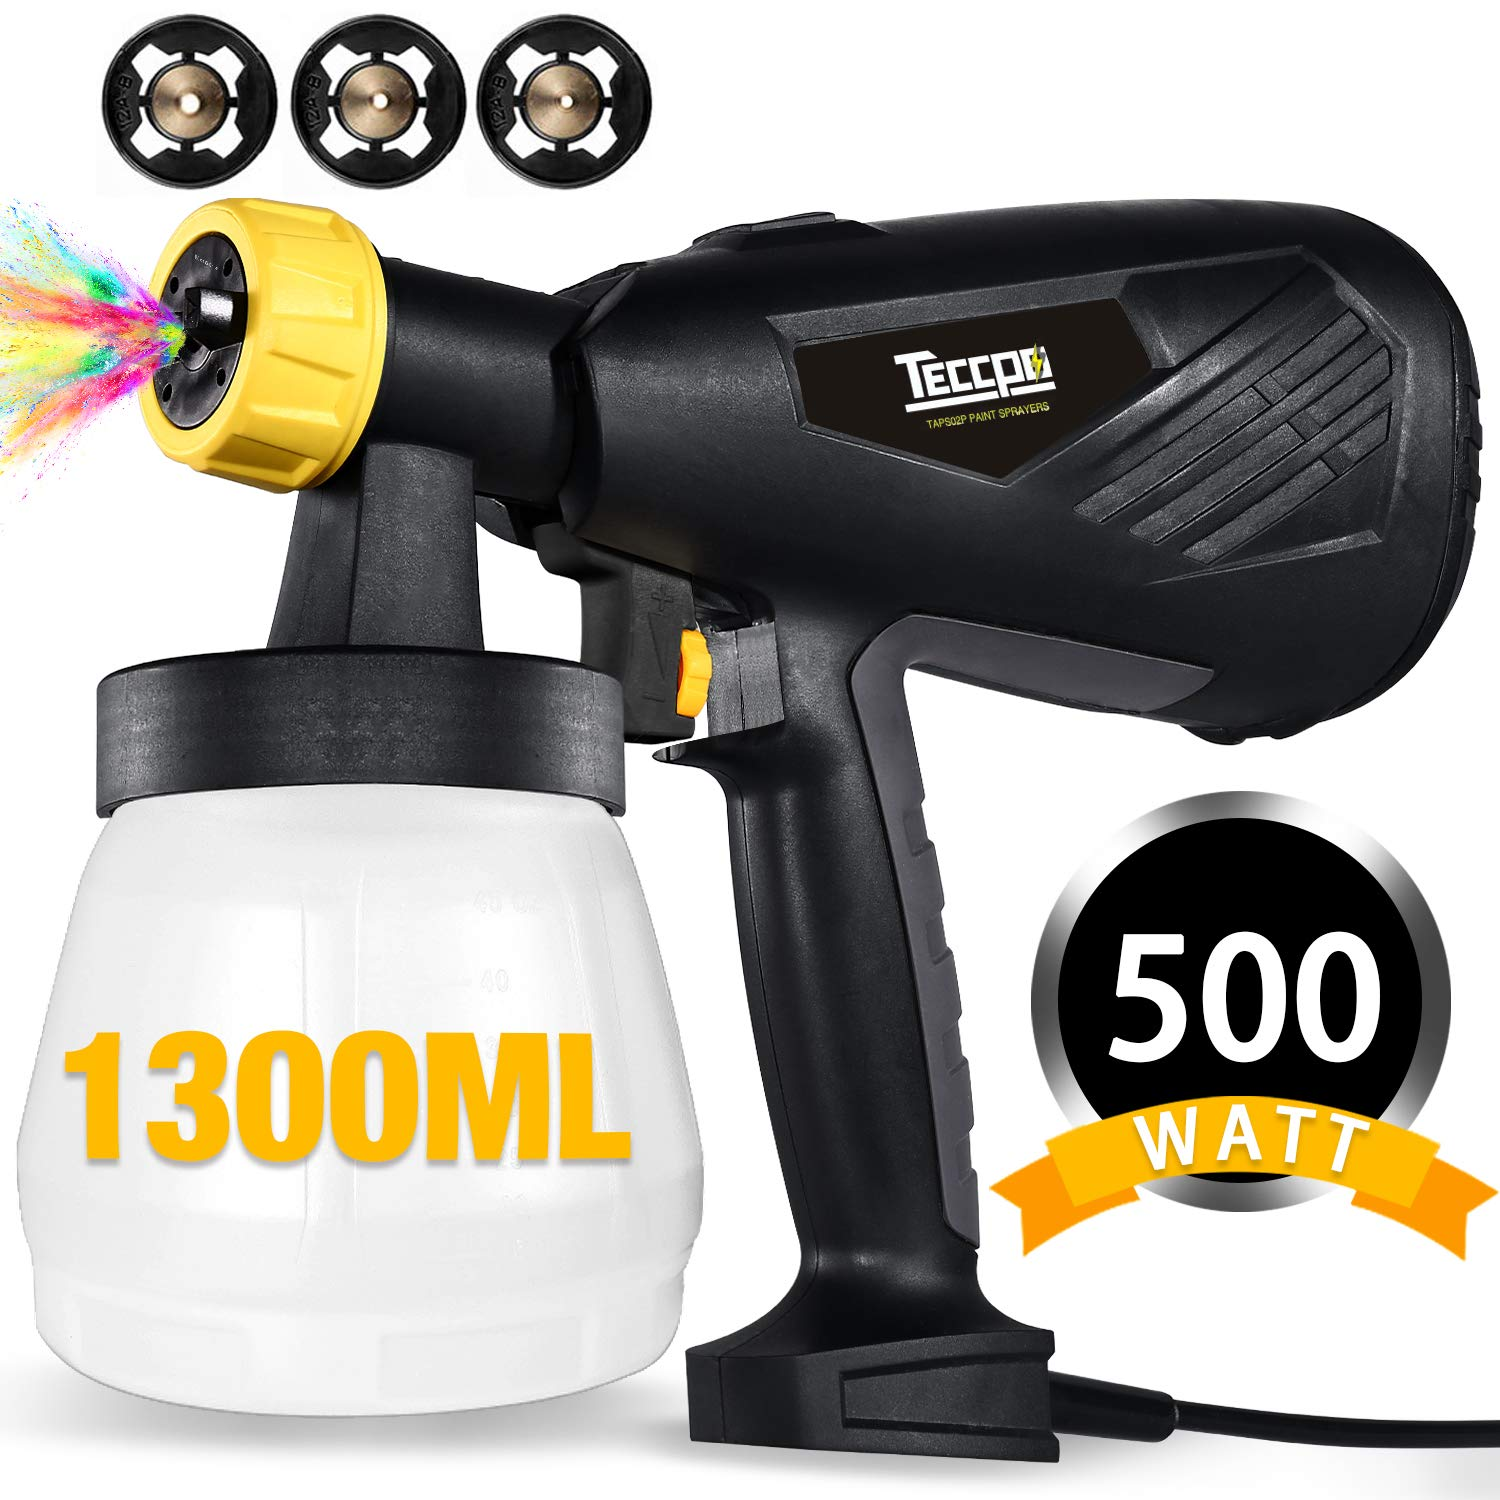 Paint Sprayer, TECCPO 500 Watts 800ml/min HVLP Home Electric Spray Gun with 1300ml Detachable Container, 3 Pcs Copper Nozzles & 3 Spray Patterns, Adjustable Valve Knob for Home Decoration & DIY by TECCPO